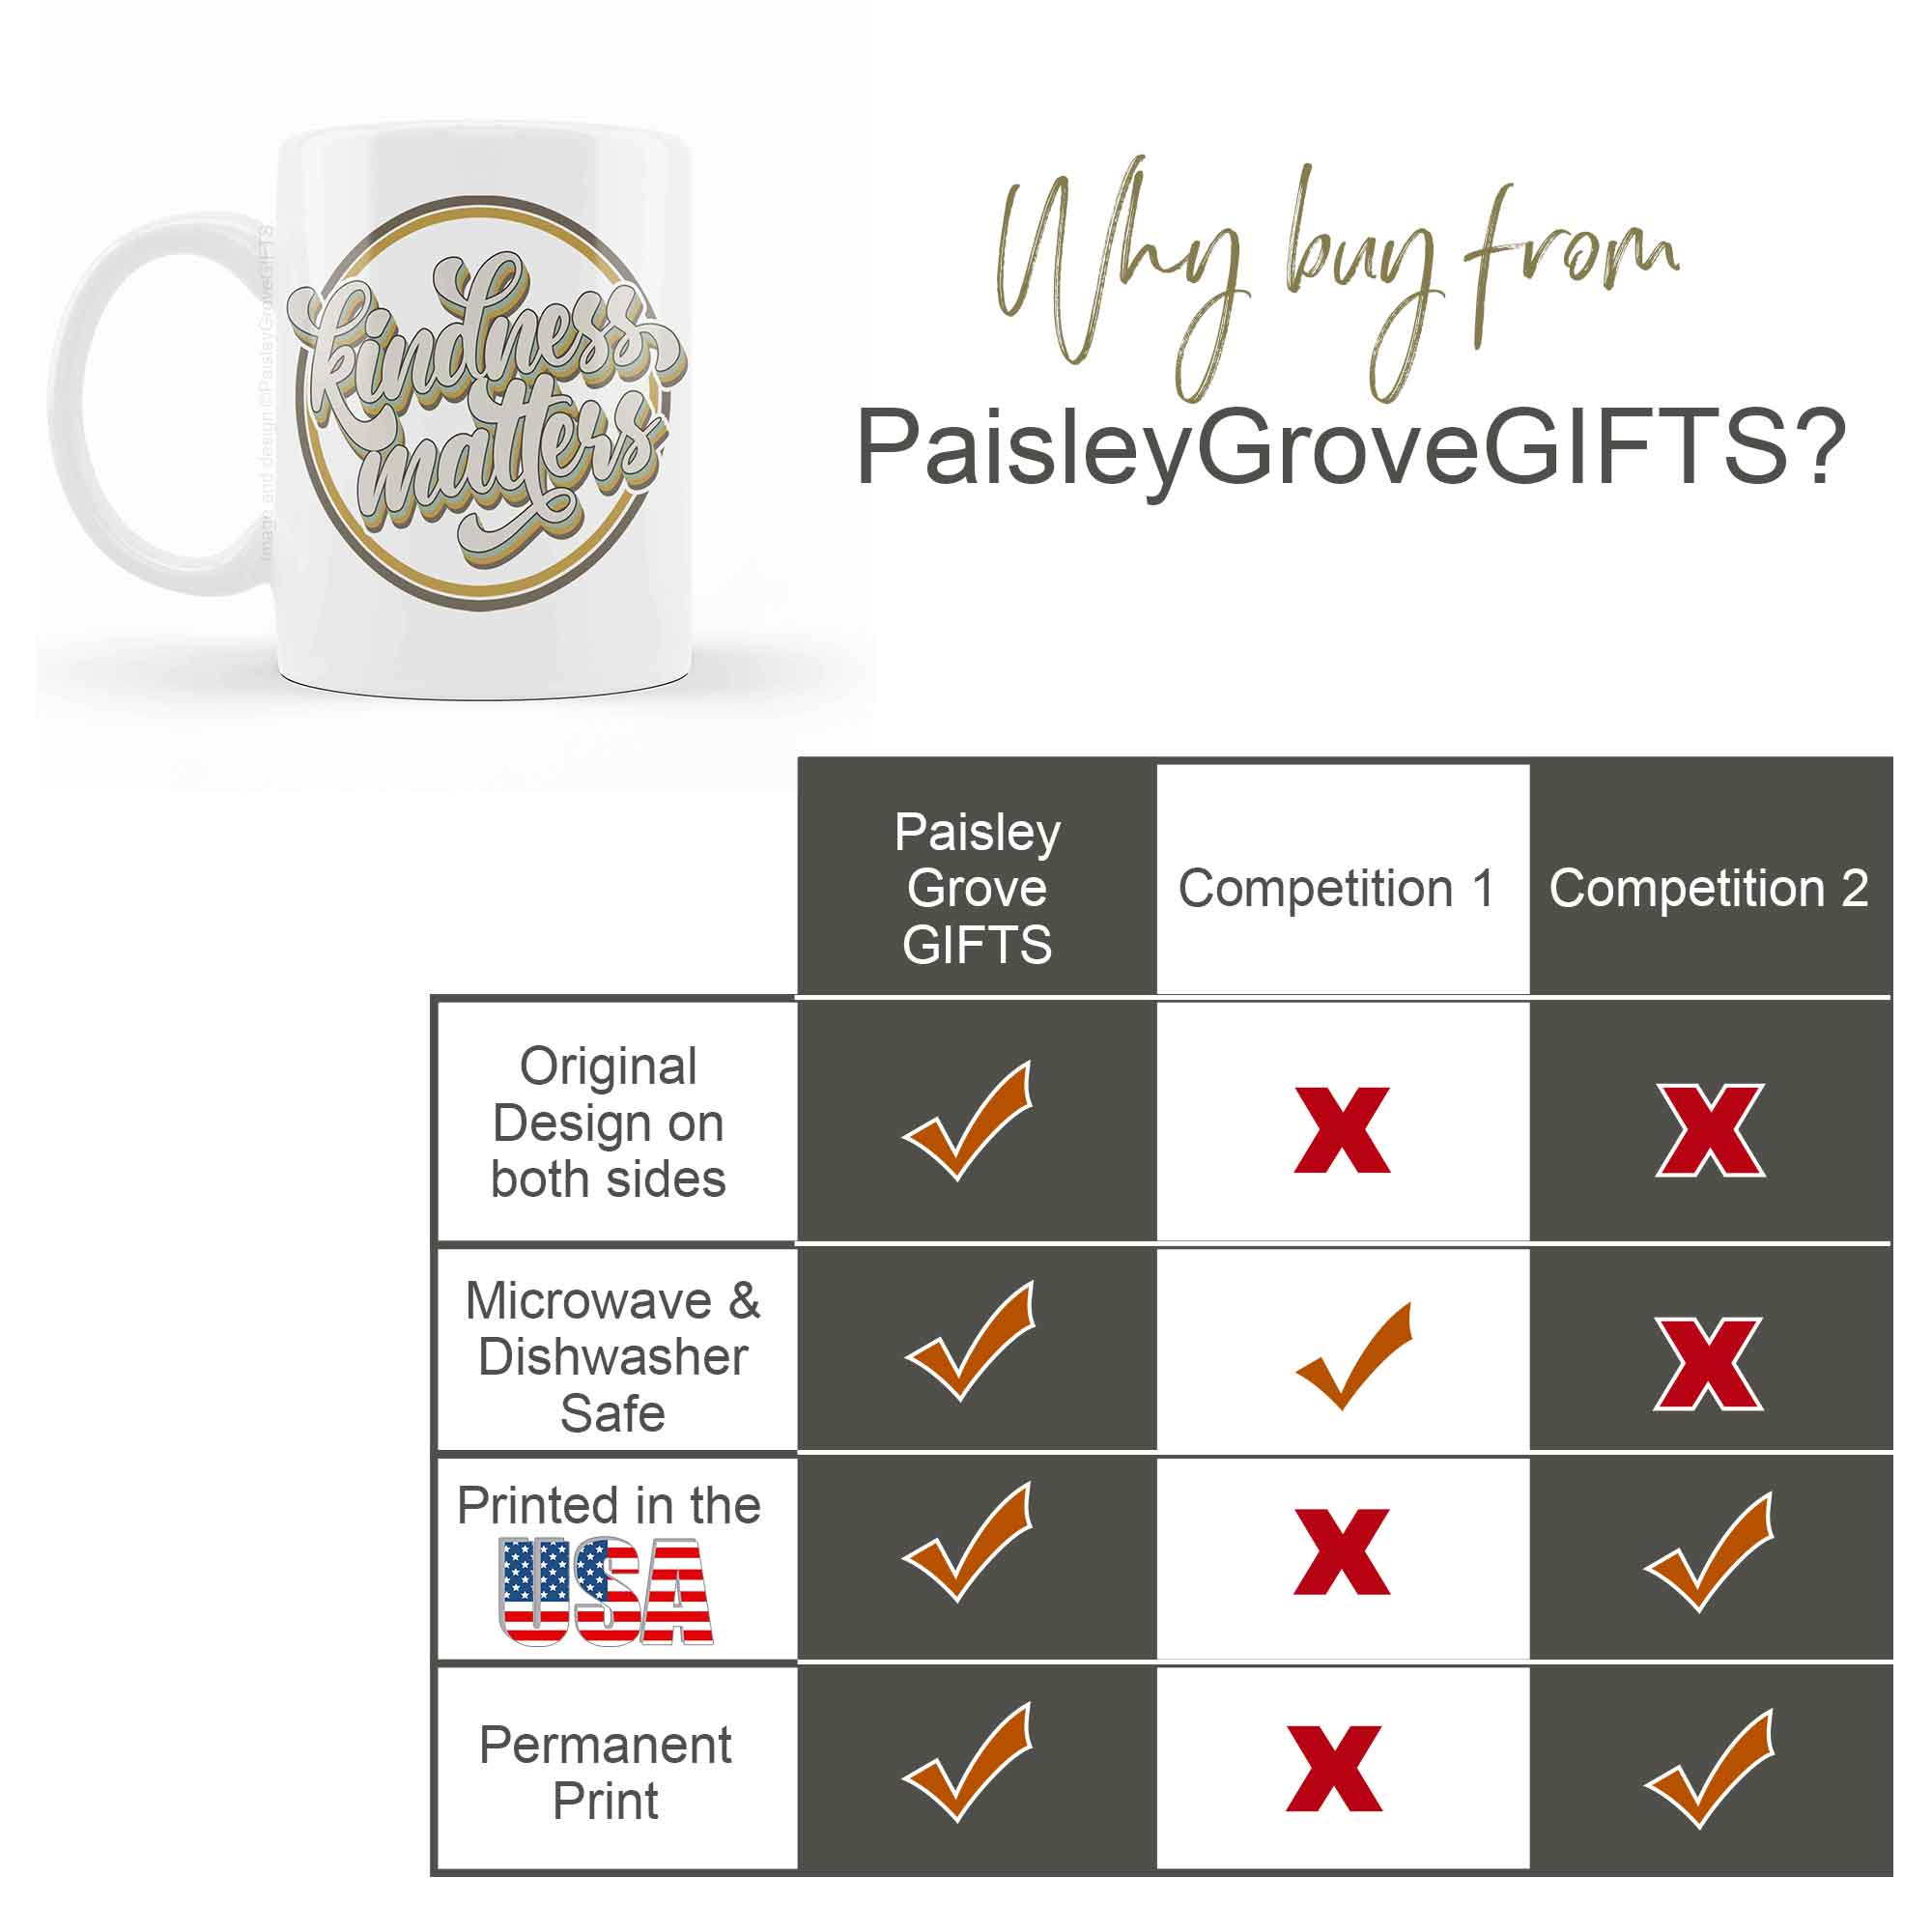 CopyrightPaisleyGroveGIFTS P001a why buy from paisleygrovegifts quality comparison chart for coffee mug